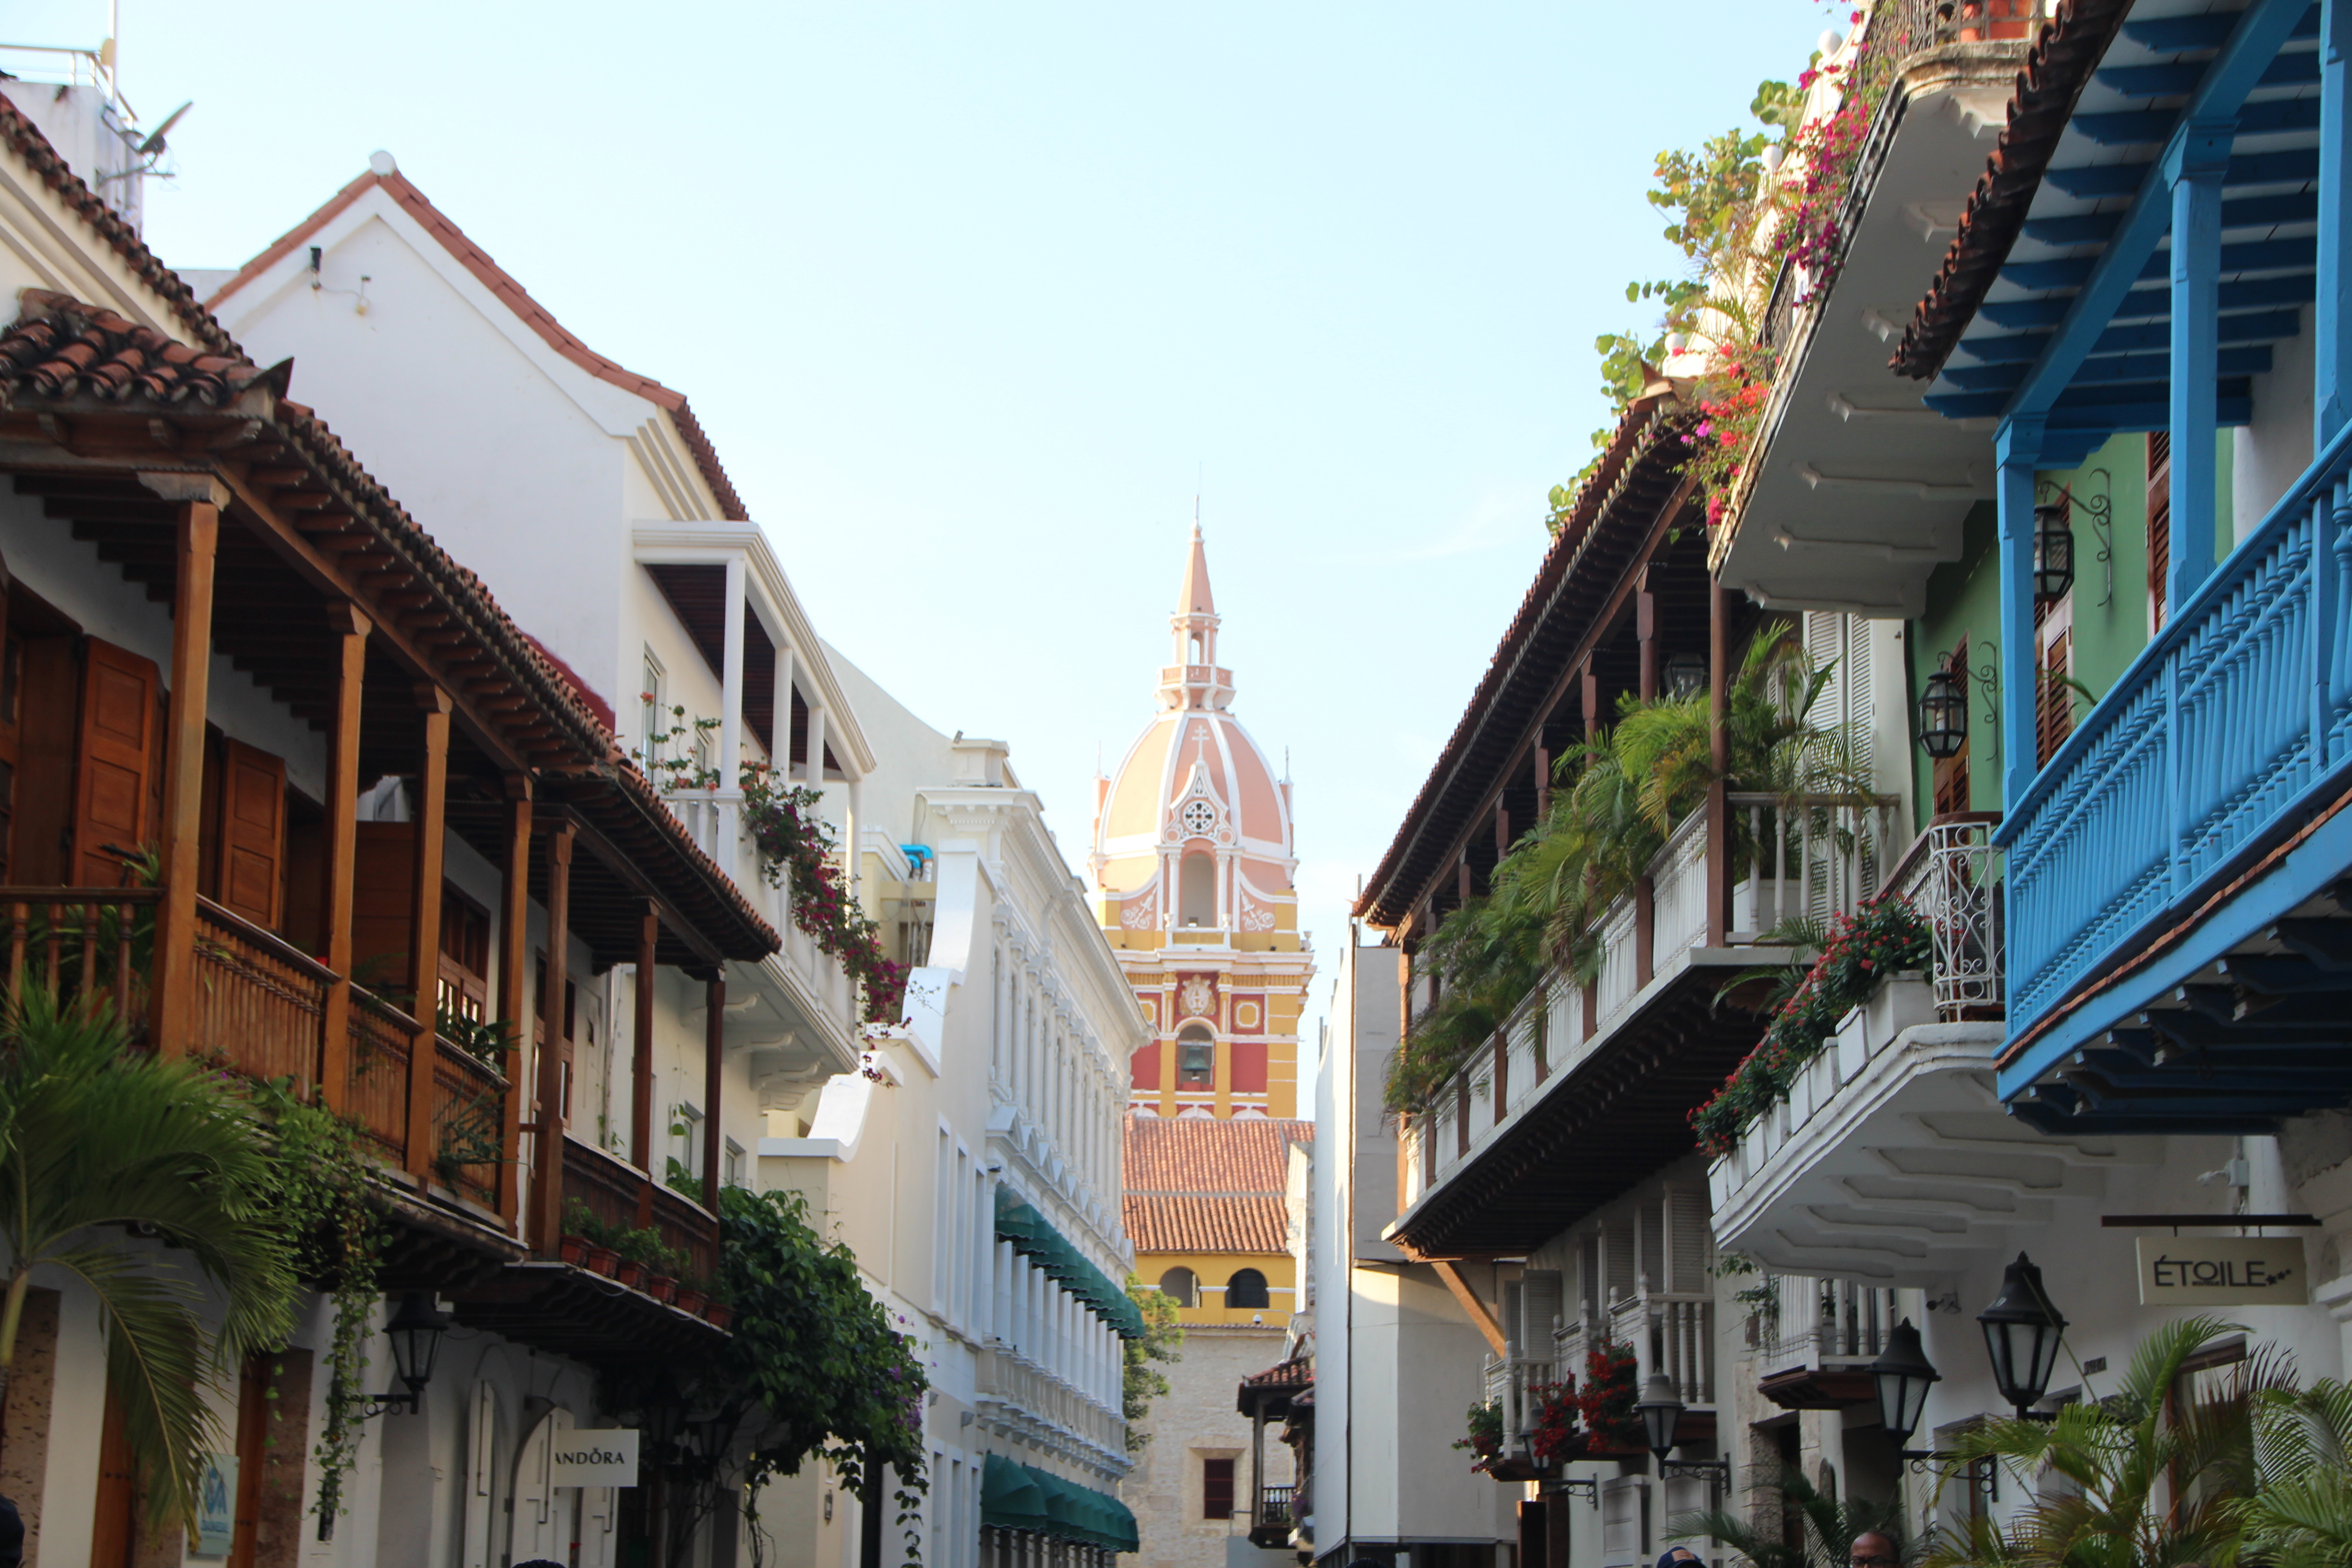 Inside the walled city - Cartagena